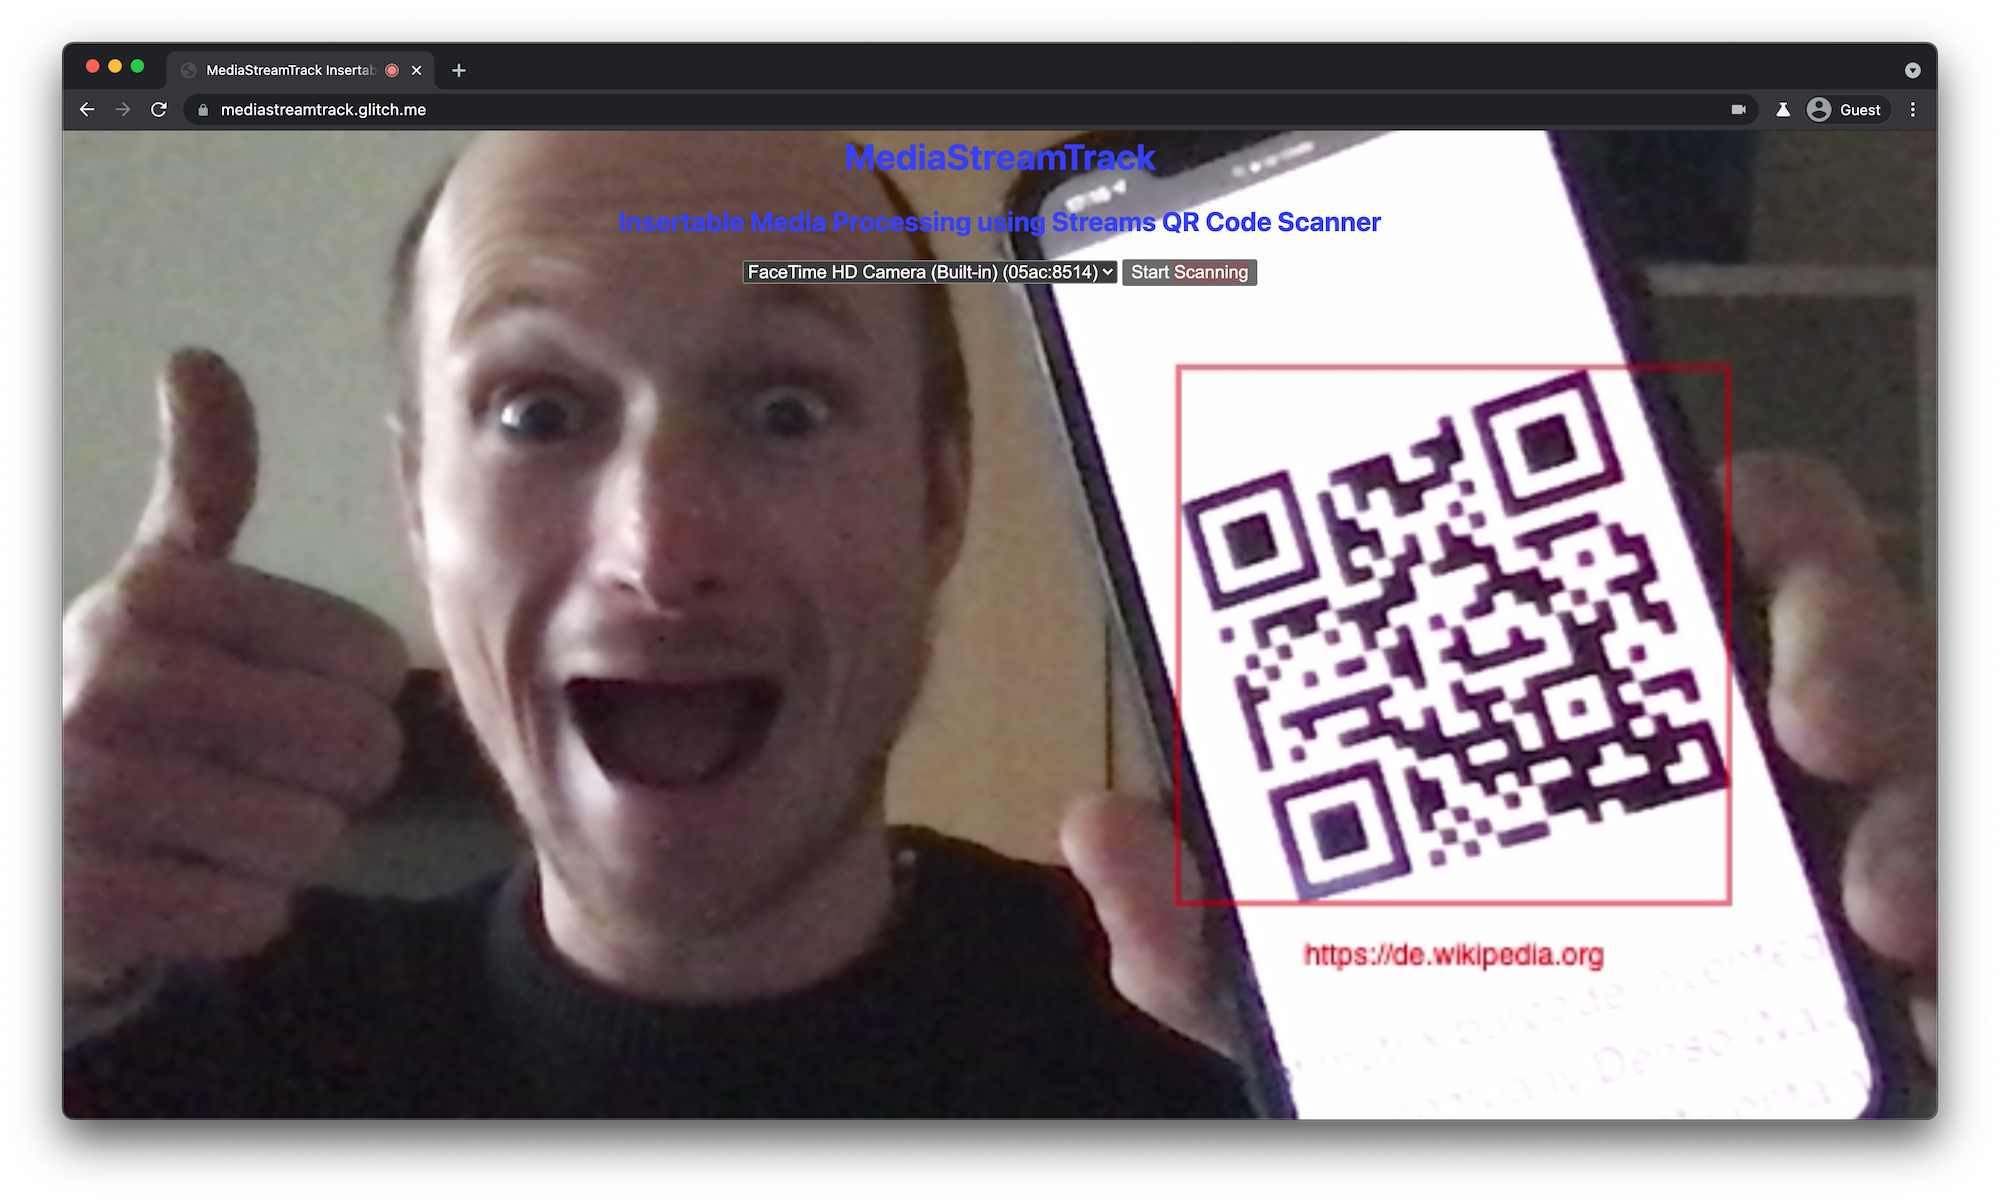 QR code scanner running in desktop browser tab showing a detected and highlighted QR code on the phone the user holds in front of the laptop's camera.